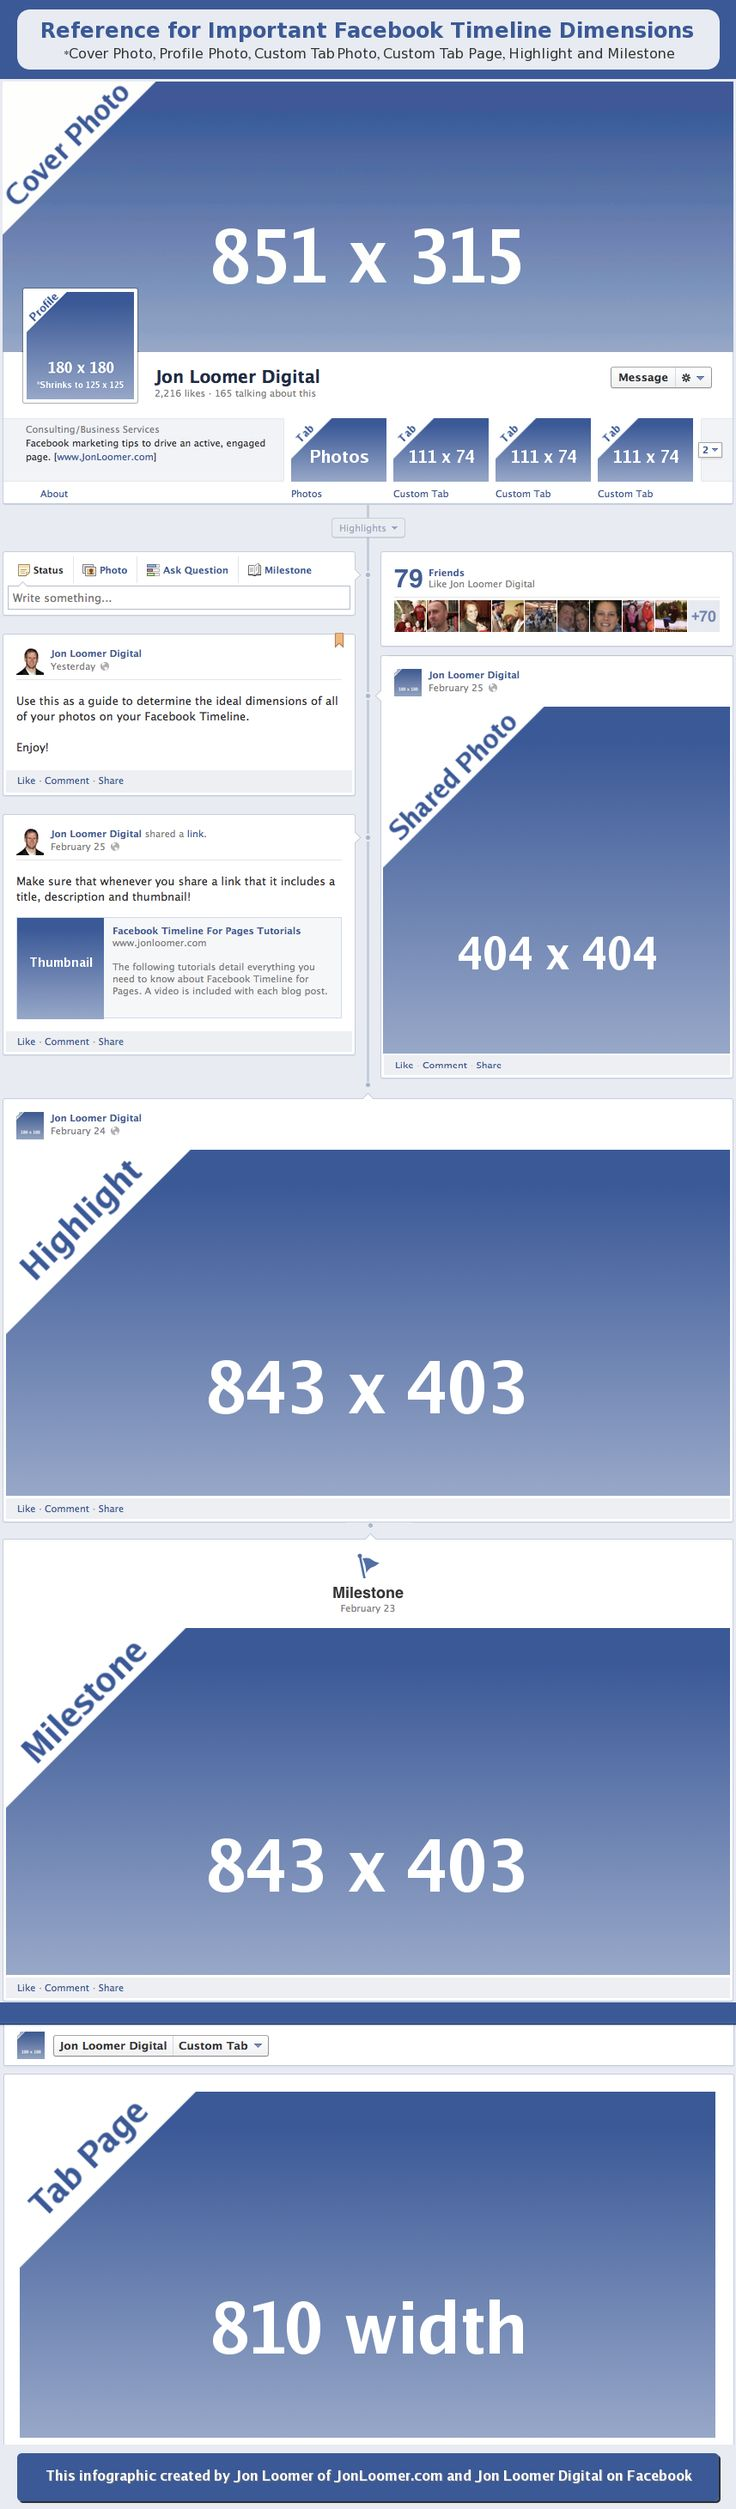 New Facebook Time Line Dimensions and Rules - https://imglobal.me/discover/facebook-time-line-dimensions-rules.html